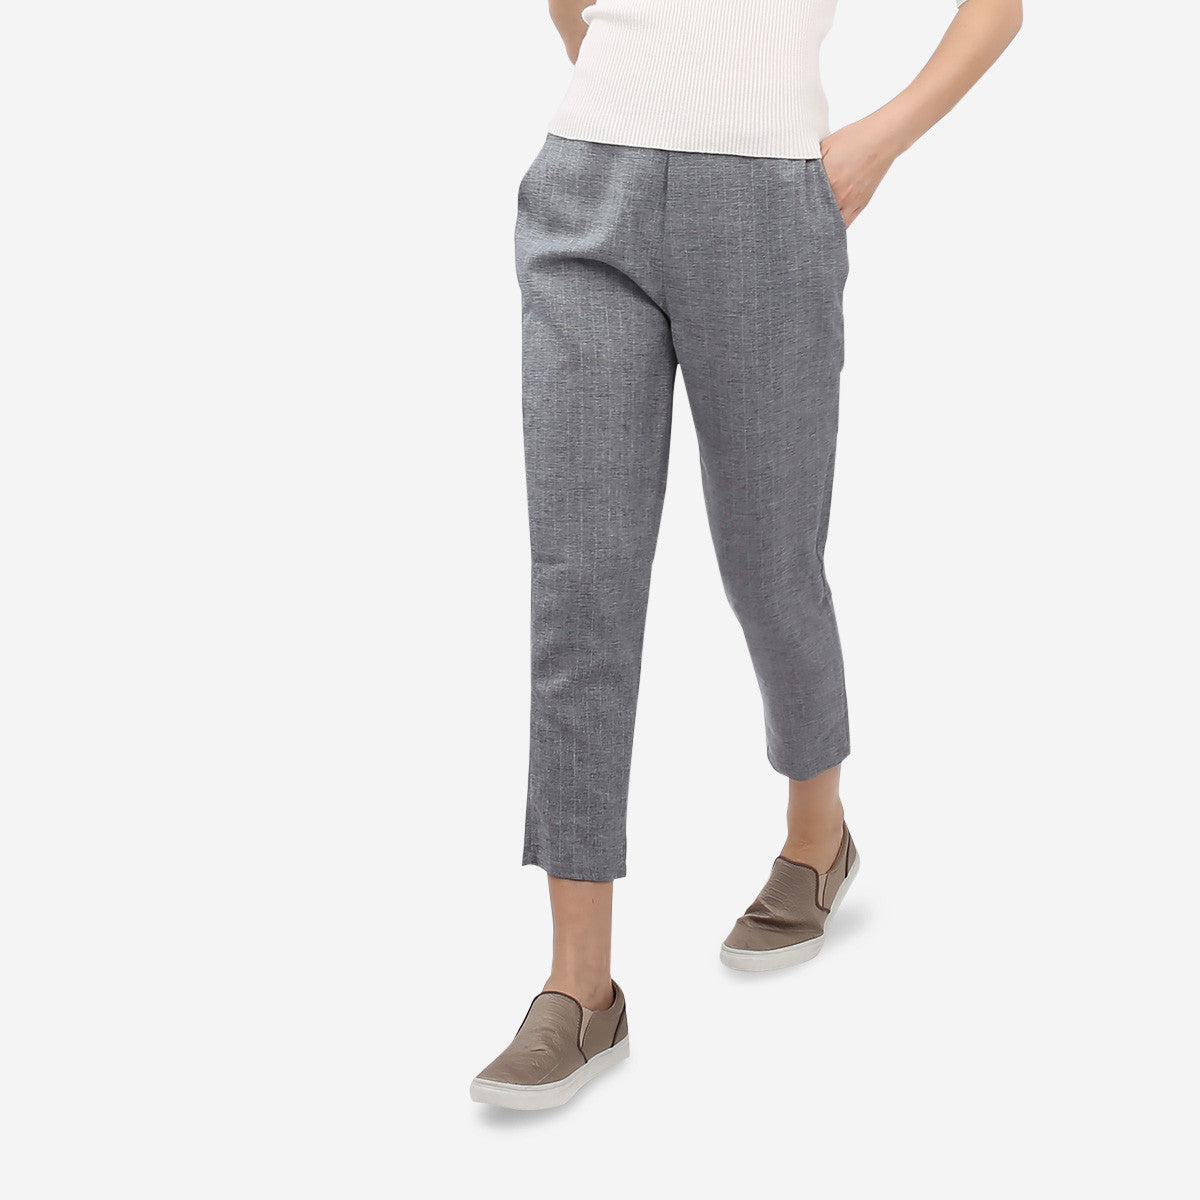 Grey Slim Pants